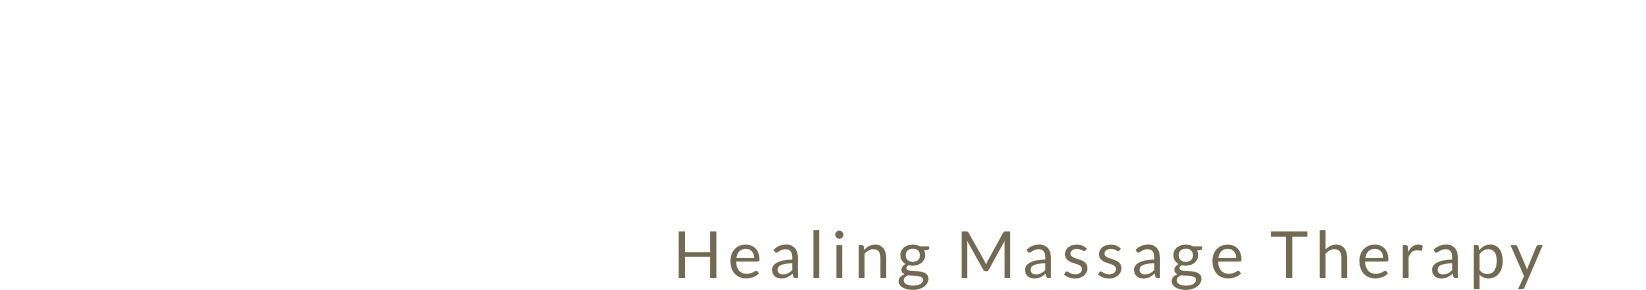 Inner Wisdom Healing Center - Nicole Warner - Columbus, Ohio